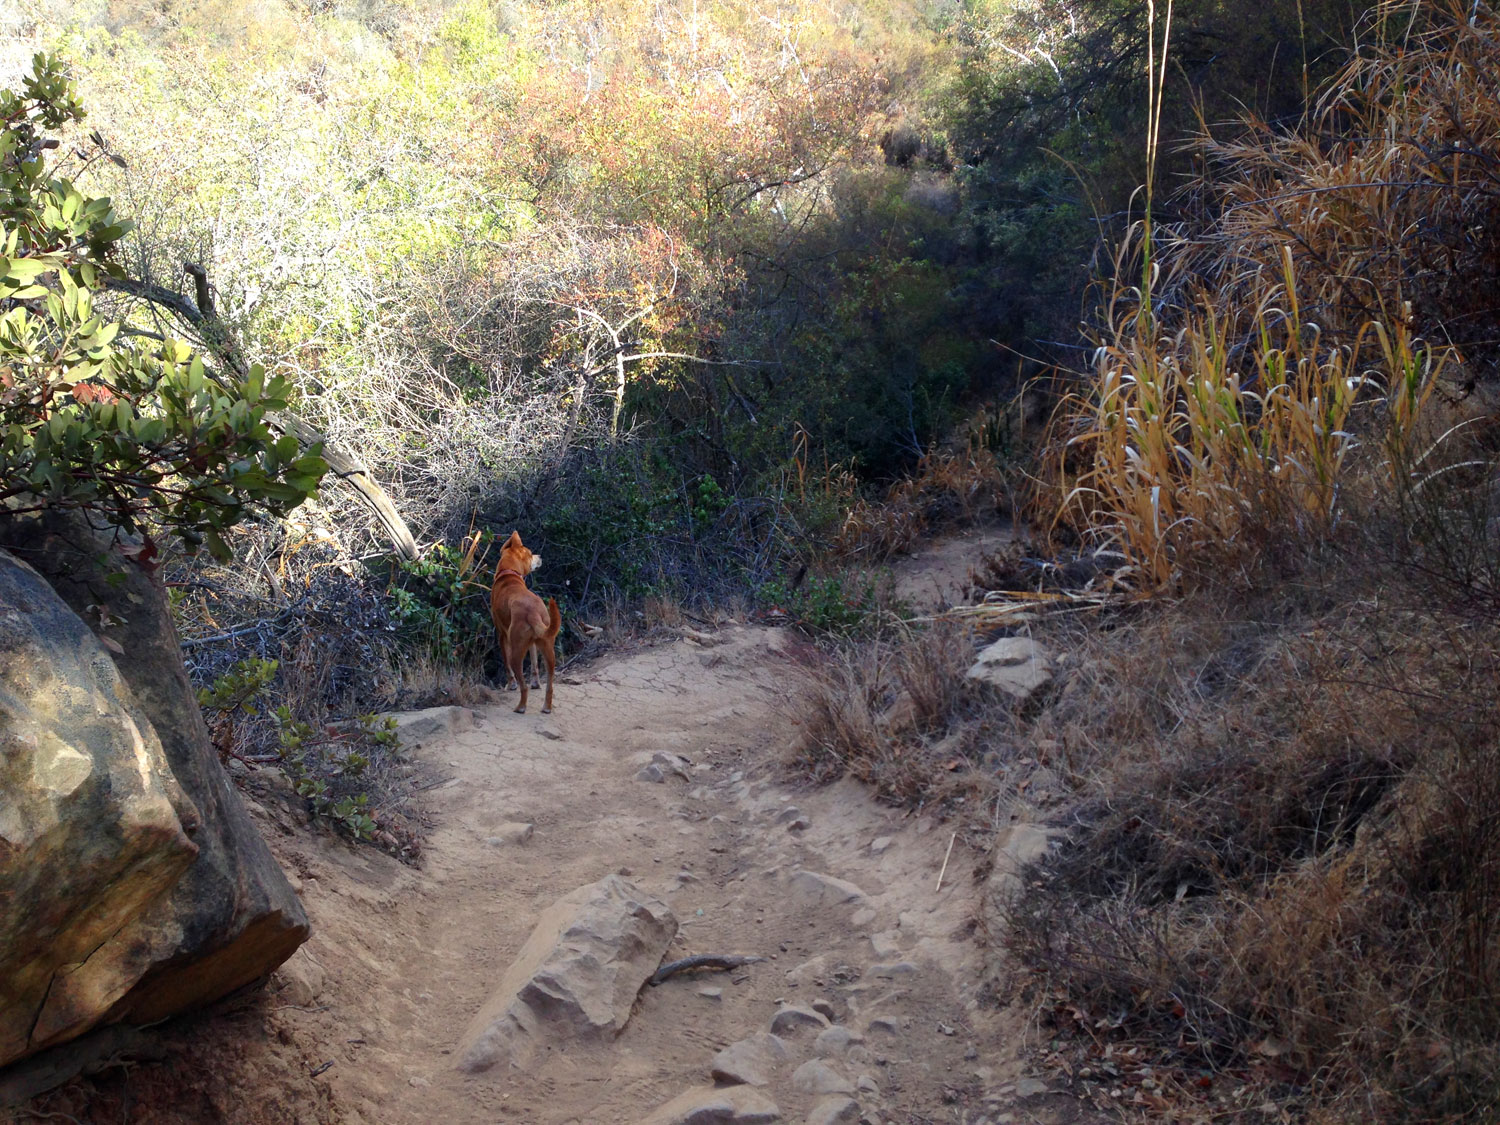 Zoe 'n Me {a dog blog} Adios Sunday Blues | Jordan benShea | Santa Barbara, California